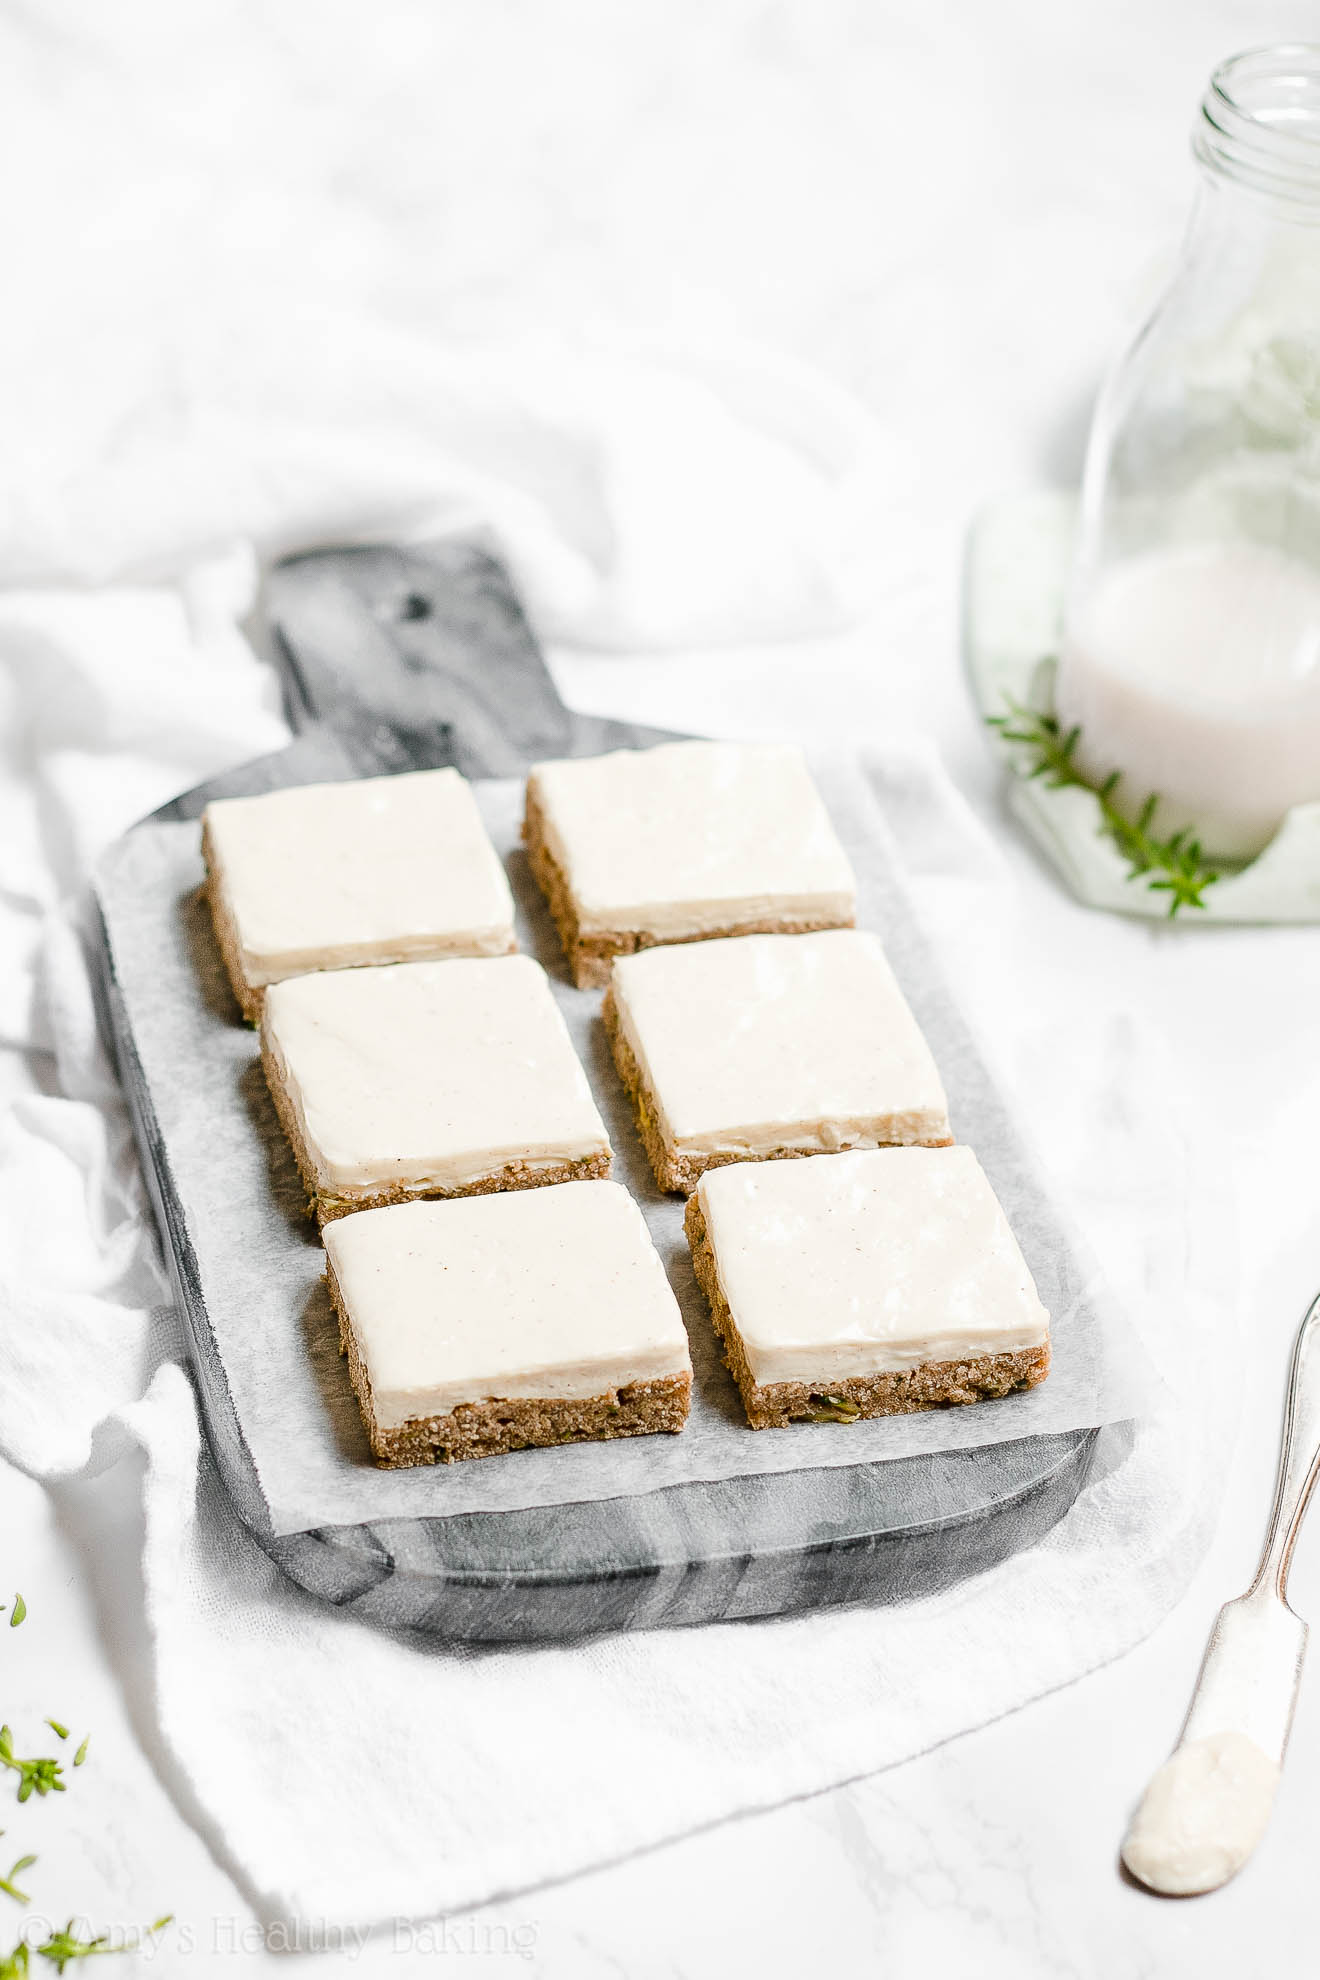 Healthy Gluten Free Zucchini Cookie Bars with Cream Cheese Frosting